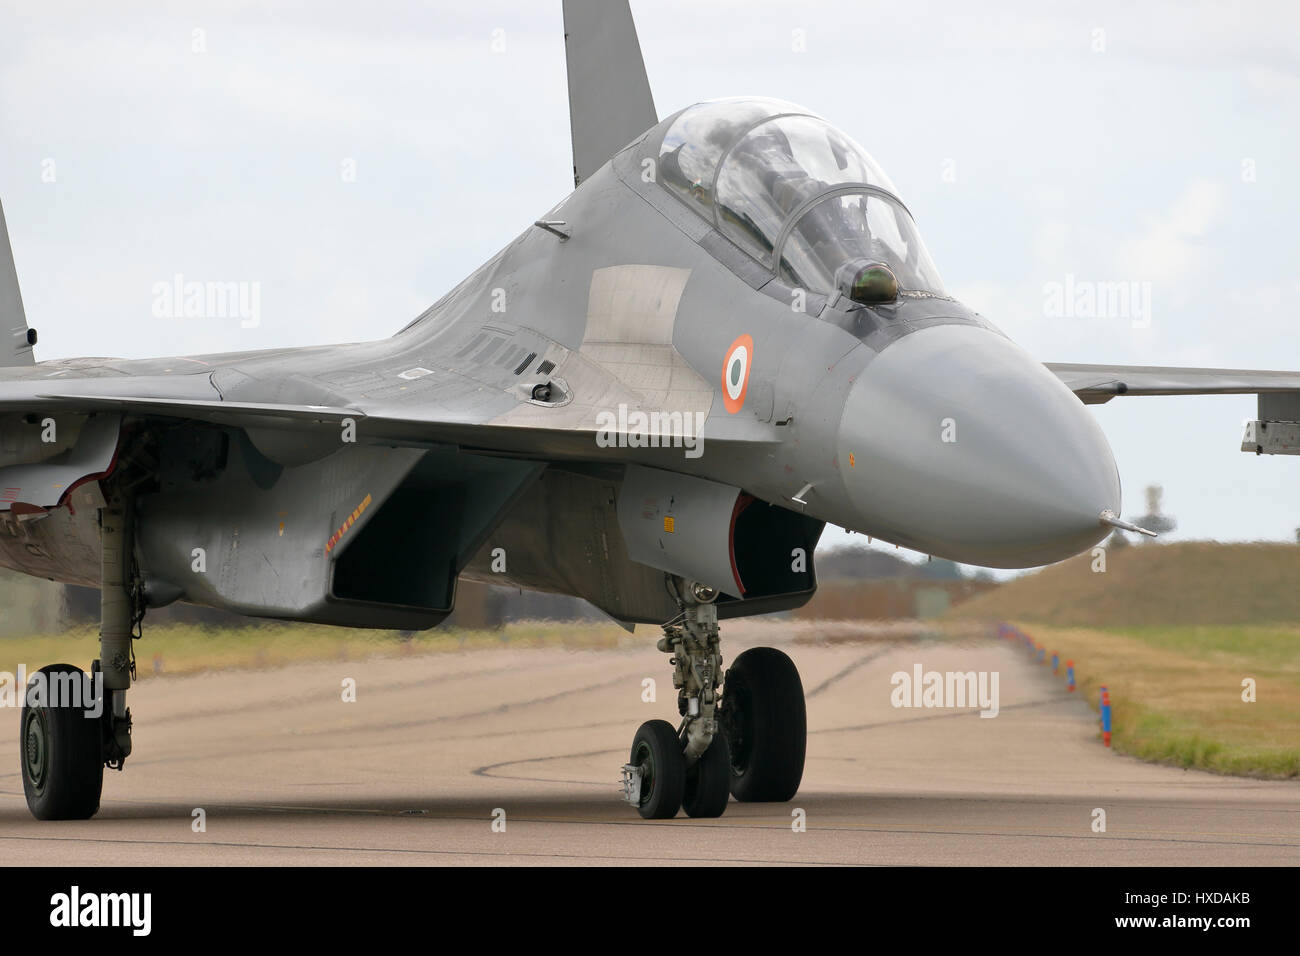 Soviet built Sukhoi Su-30MKI advanced multi-role fighters of the Indian Air Force at RAF Coningsby, Lincolnshire - Stock Image